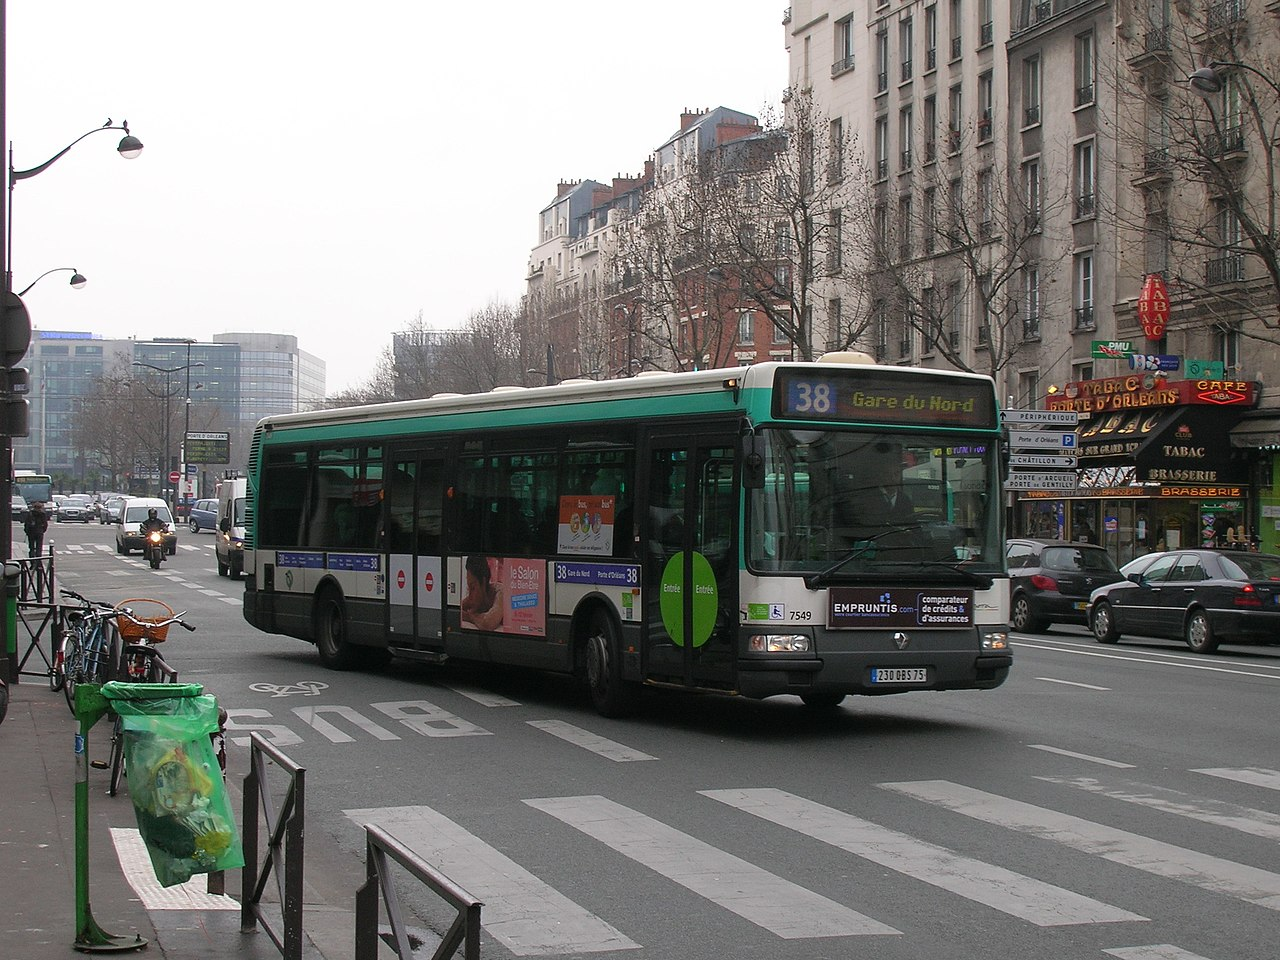 file ratp 38 porte d 39 orl ans jpg wikimedia commons. Black Bedroom Furniture Sets. Home Design Ideas